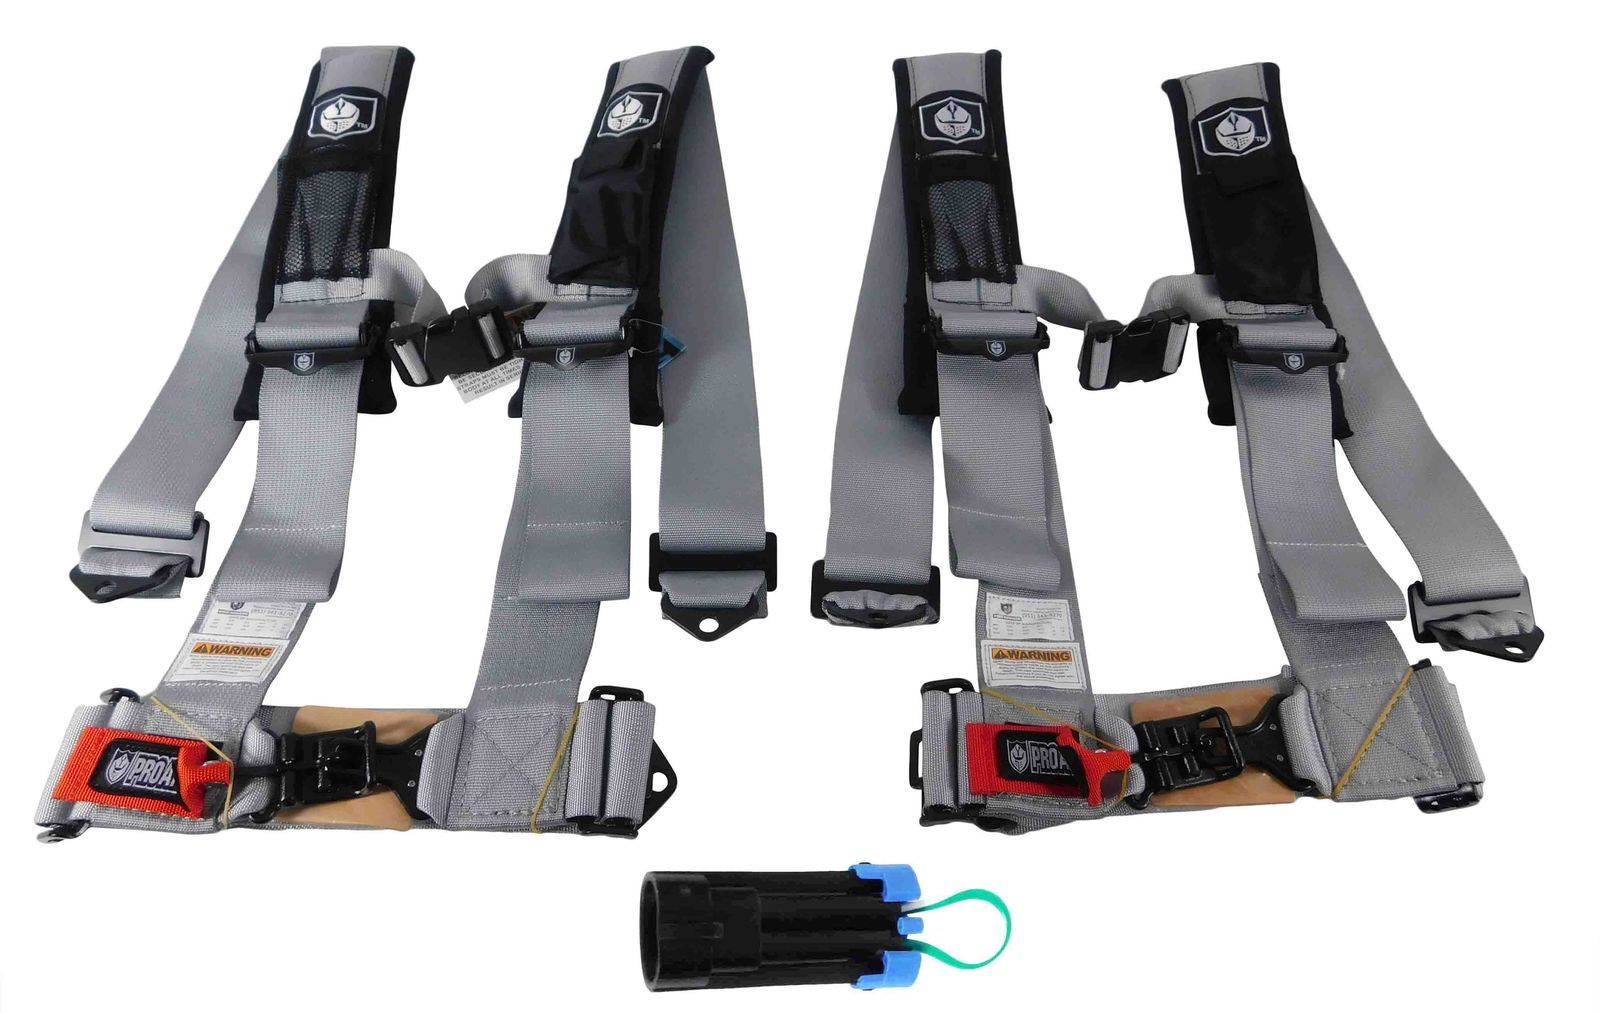 Pro-Armor-A114230ORx2-P151100-4-Point-3-Harness-w-Override-Clip-Silver-2-PACK-image-1